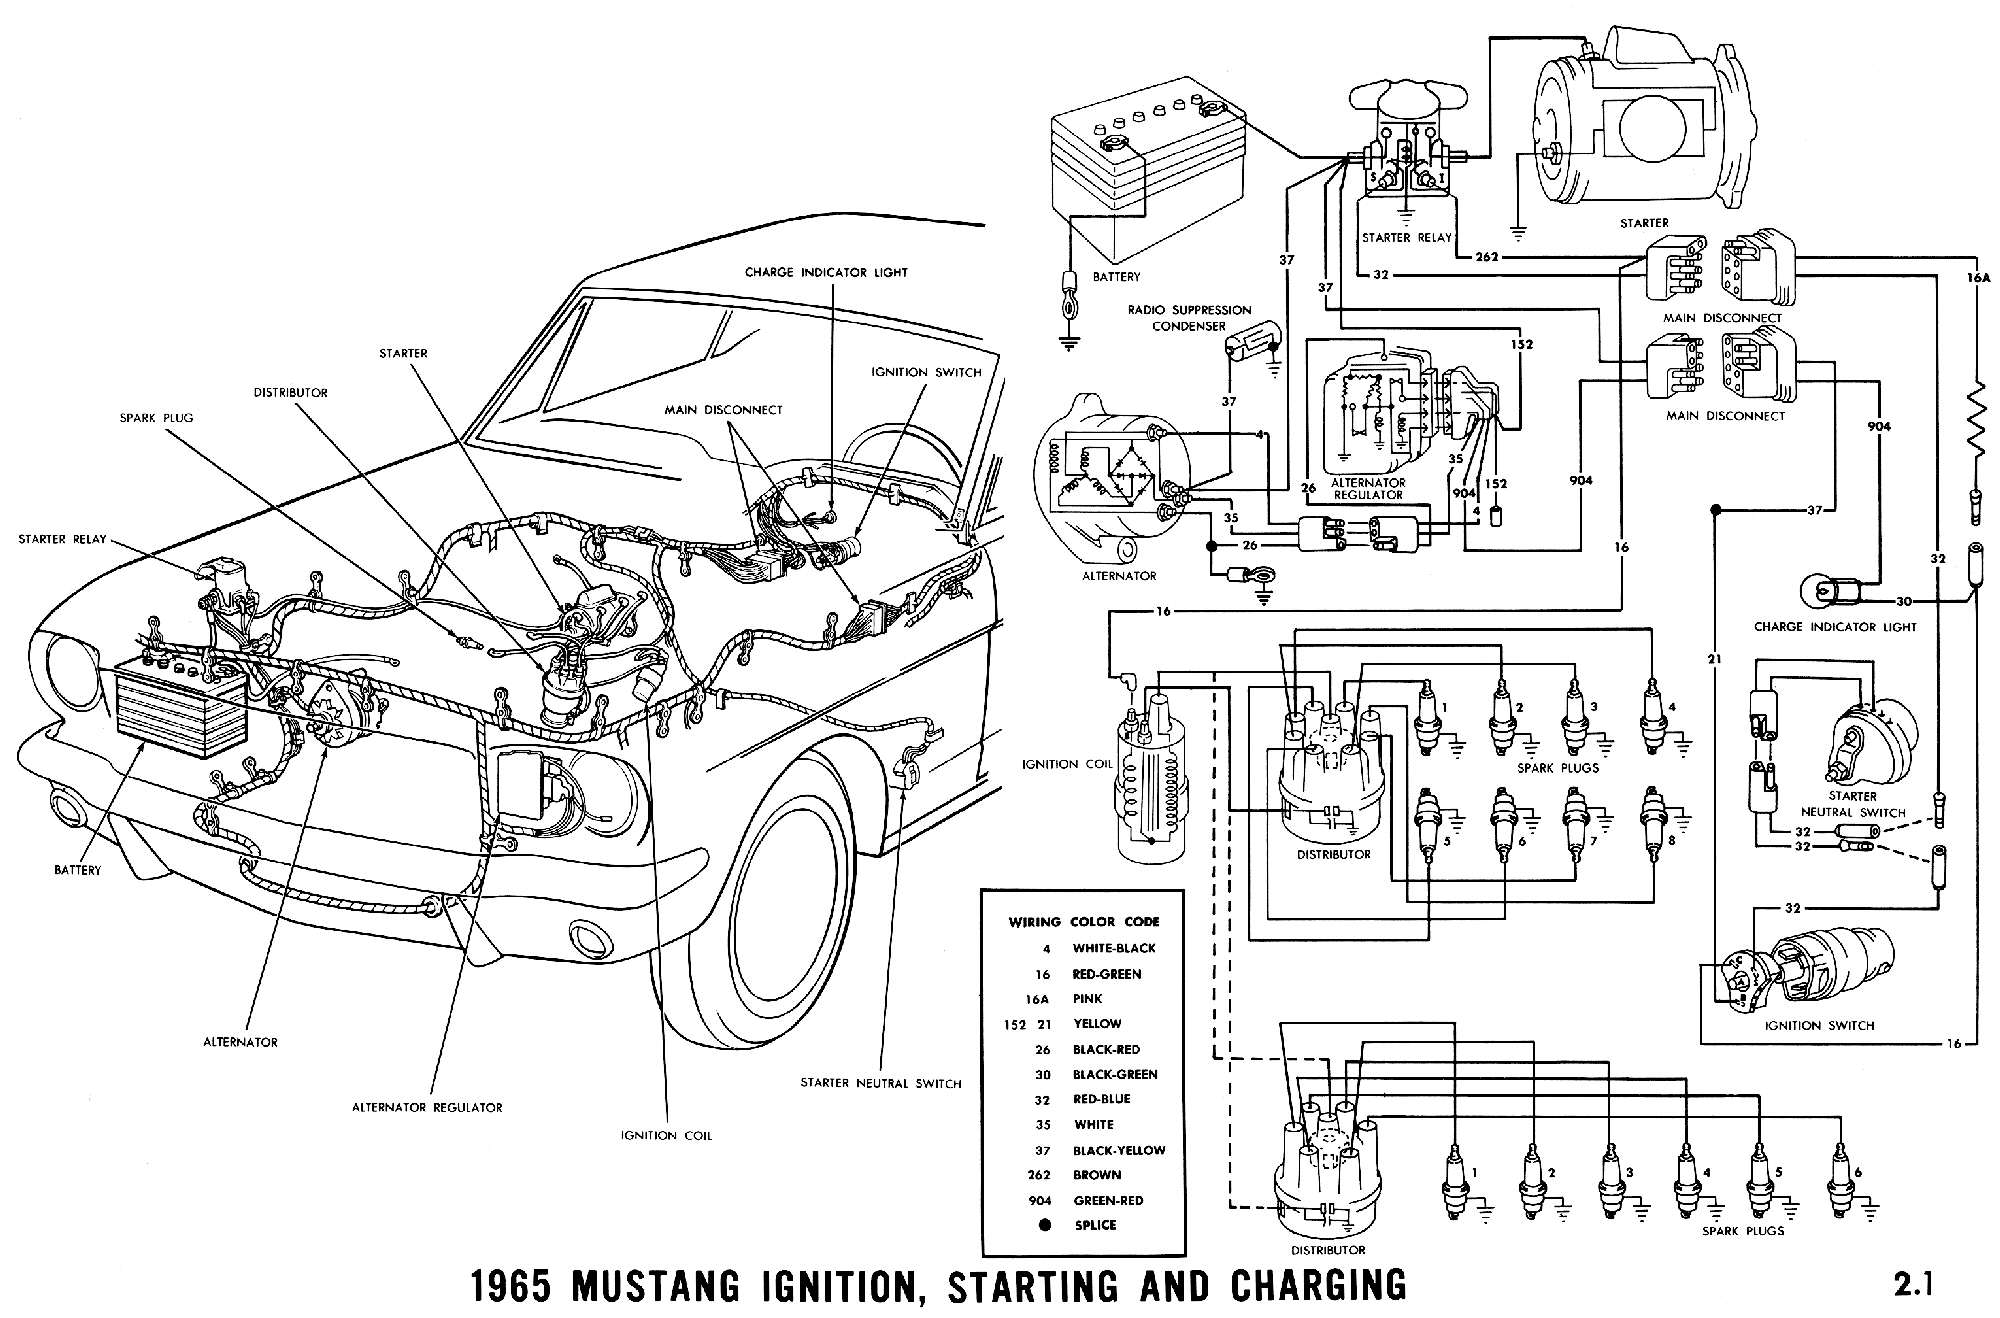 1965c 1965 mustang wiring diagrams average joe restoration 2000 ford mustang ignition wiring diagram at creativeand.co